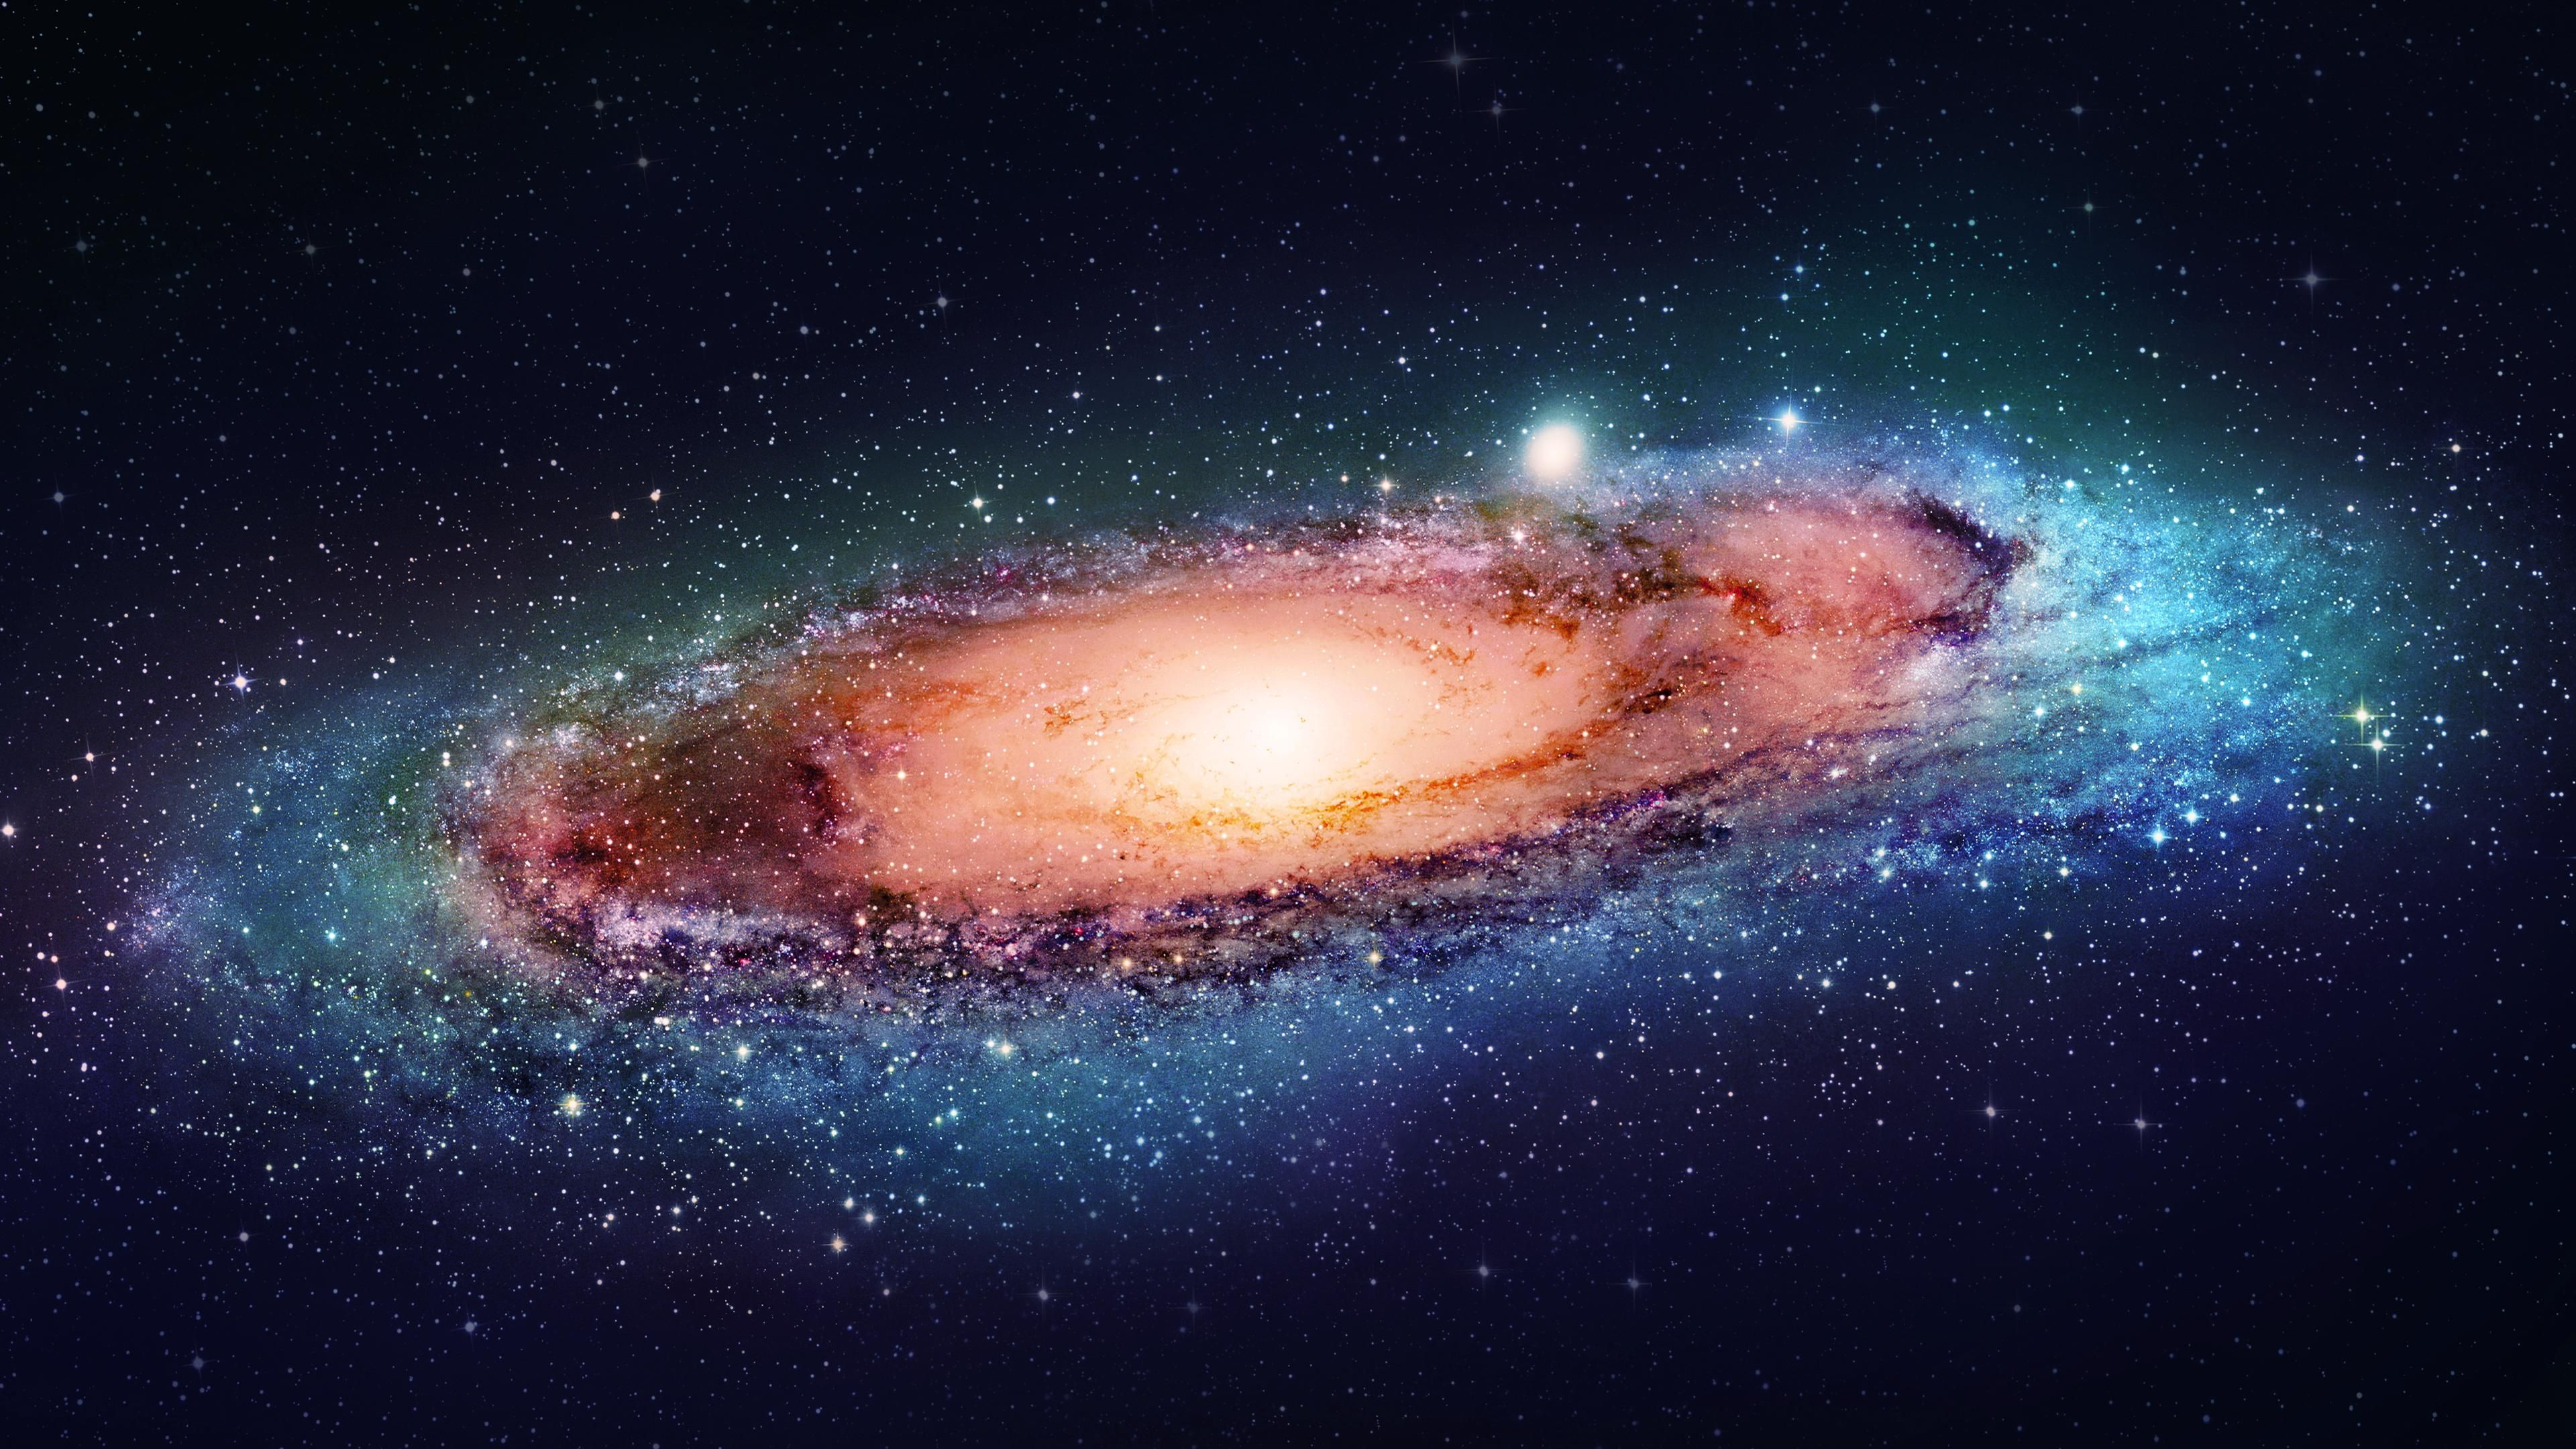 4k Space Wallpapers Are The Best Here Is A Few I Like Andromeda Galaxy Hd Space Nebula